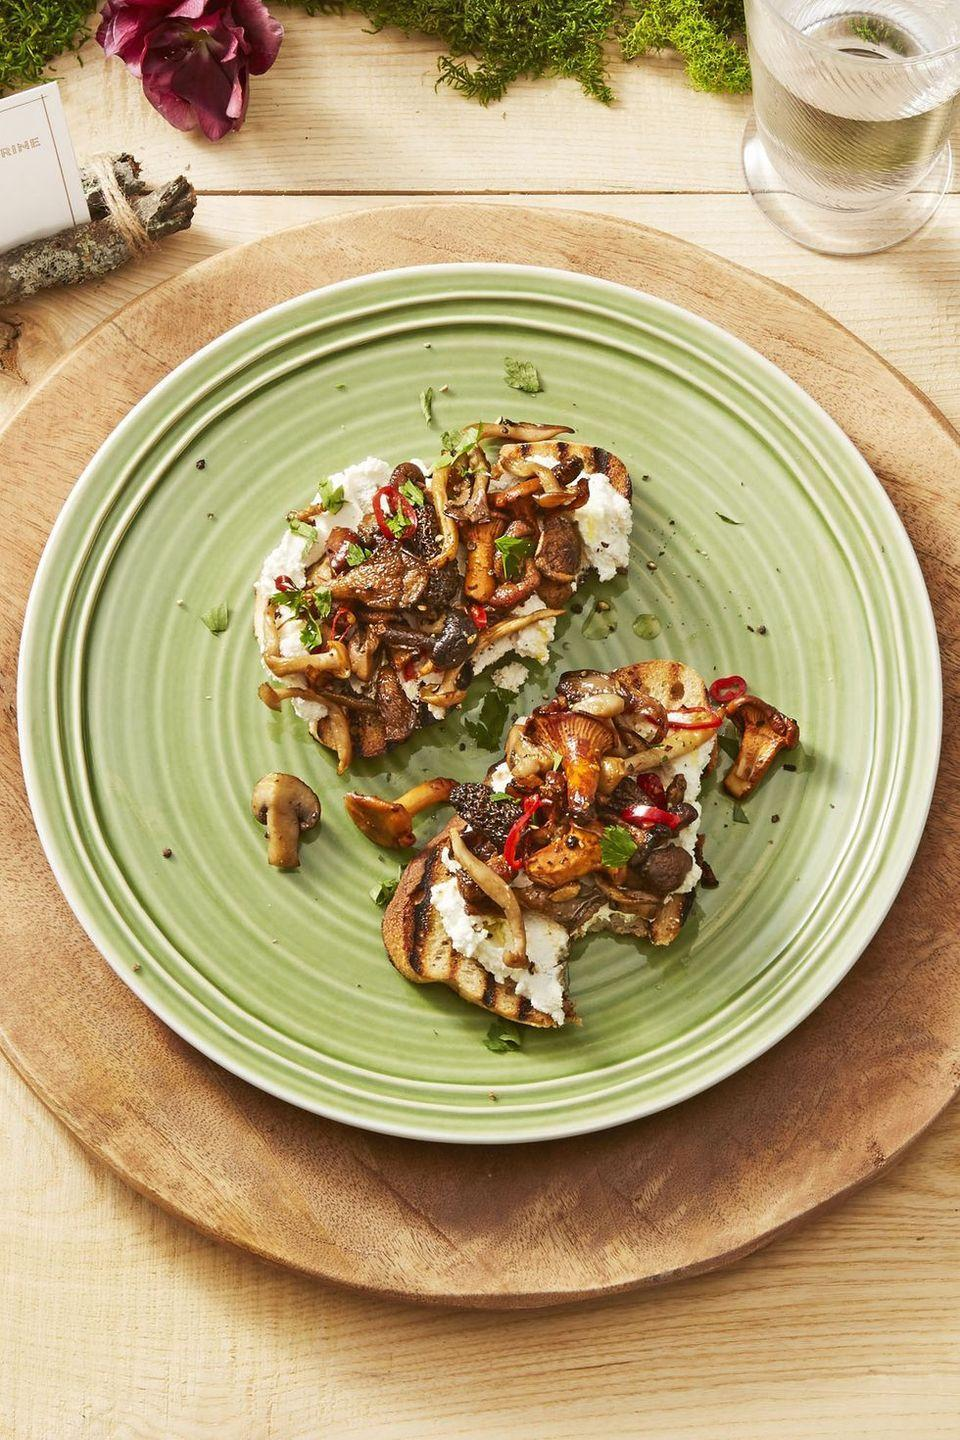 """<p>Have 10 minutes? You can whip up a toast that manages to be even creamier than the standard avocado option at most brunches. </p><p><em><a href=""""https://www.goodhousekeeping.com/food-recipes/easy/a24181244/wild-mushroom-toasts-recipe/"""" rel=""""nofollow noopener"""" target=""""_blank"""" data-ylk=""""slk:Get the recipe for Wild Mushroom Toasts »"""" class=""""link rapid-noclick-resp"""">Get the recipe for Wild Mushroom Toasts »</a></em><br></p><p><strong>RELATED: </strong><a href=""""https://www.goodhousekeeping.com/food-recipes/g4201/best-brunch-recipes/"""" rel=""""nofollow noopener"""" target=""""_blank"""" data-ylk=""""slk:60 Best Brunch Ideas to Try This Weekend"""" class=""""link rapid-noclick-resp"""">60 Best Brunch Ideas to Try This Weekend</a></p>"""